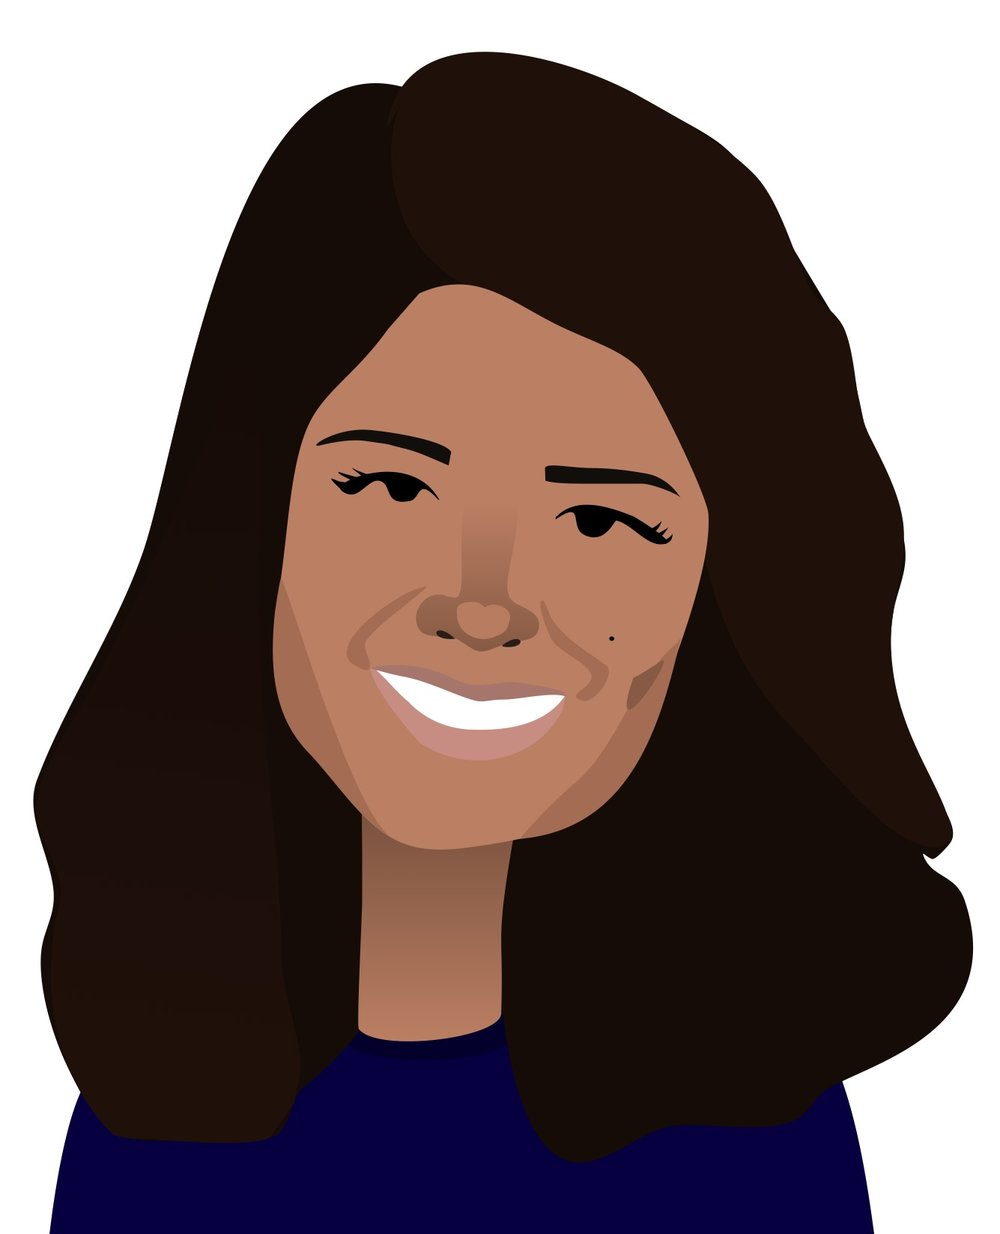 Parul Agarwal Cartoon.jpg